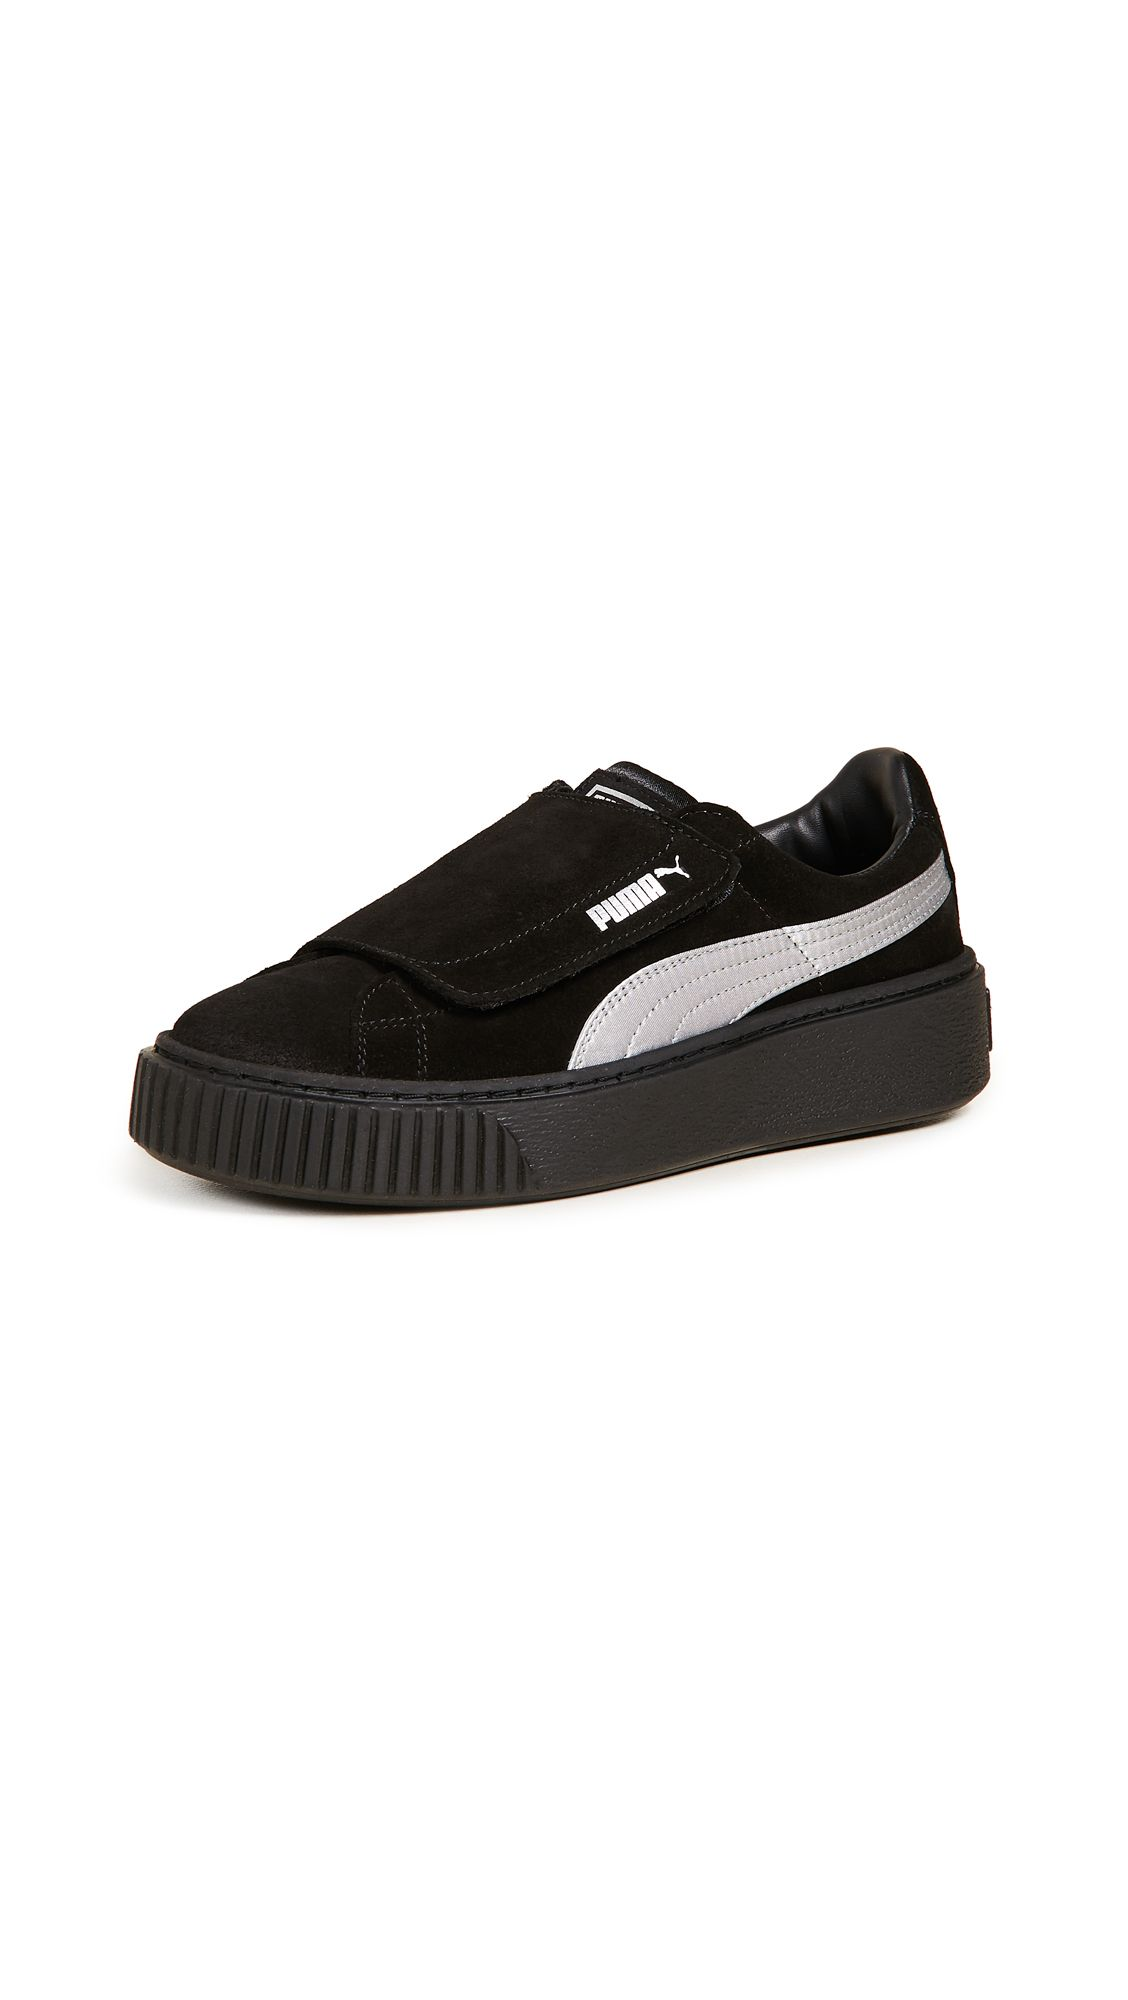 9fda394fd1b5 PUMA PLATFORM STRAP SATIN EP SNEAKERS.  puma  shoes